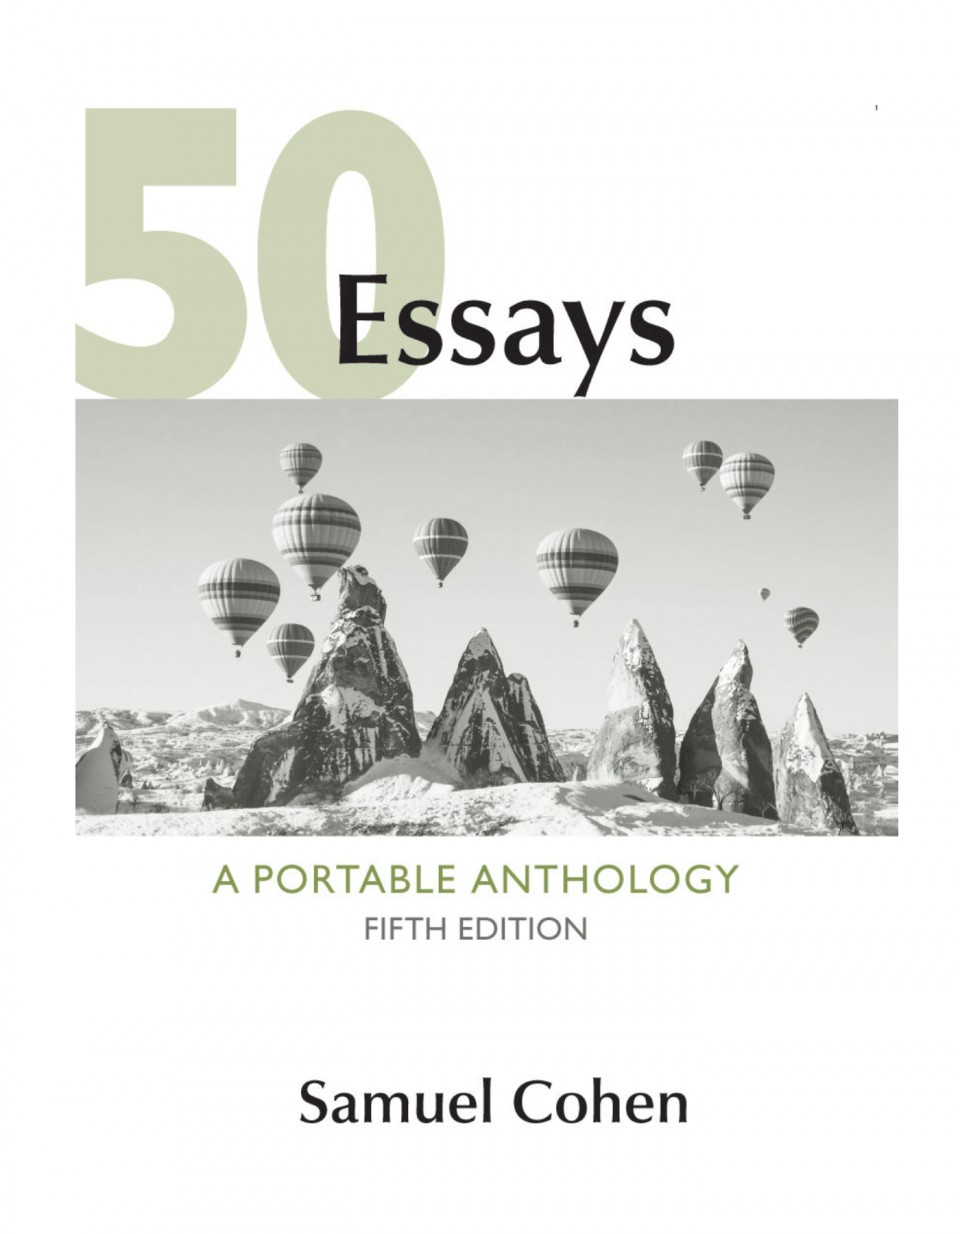 012 50fit14002c1800ssl1 Essay Example Essays Portable Anthology 4th Edition Awful 50 A Pdf Free 960